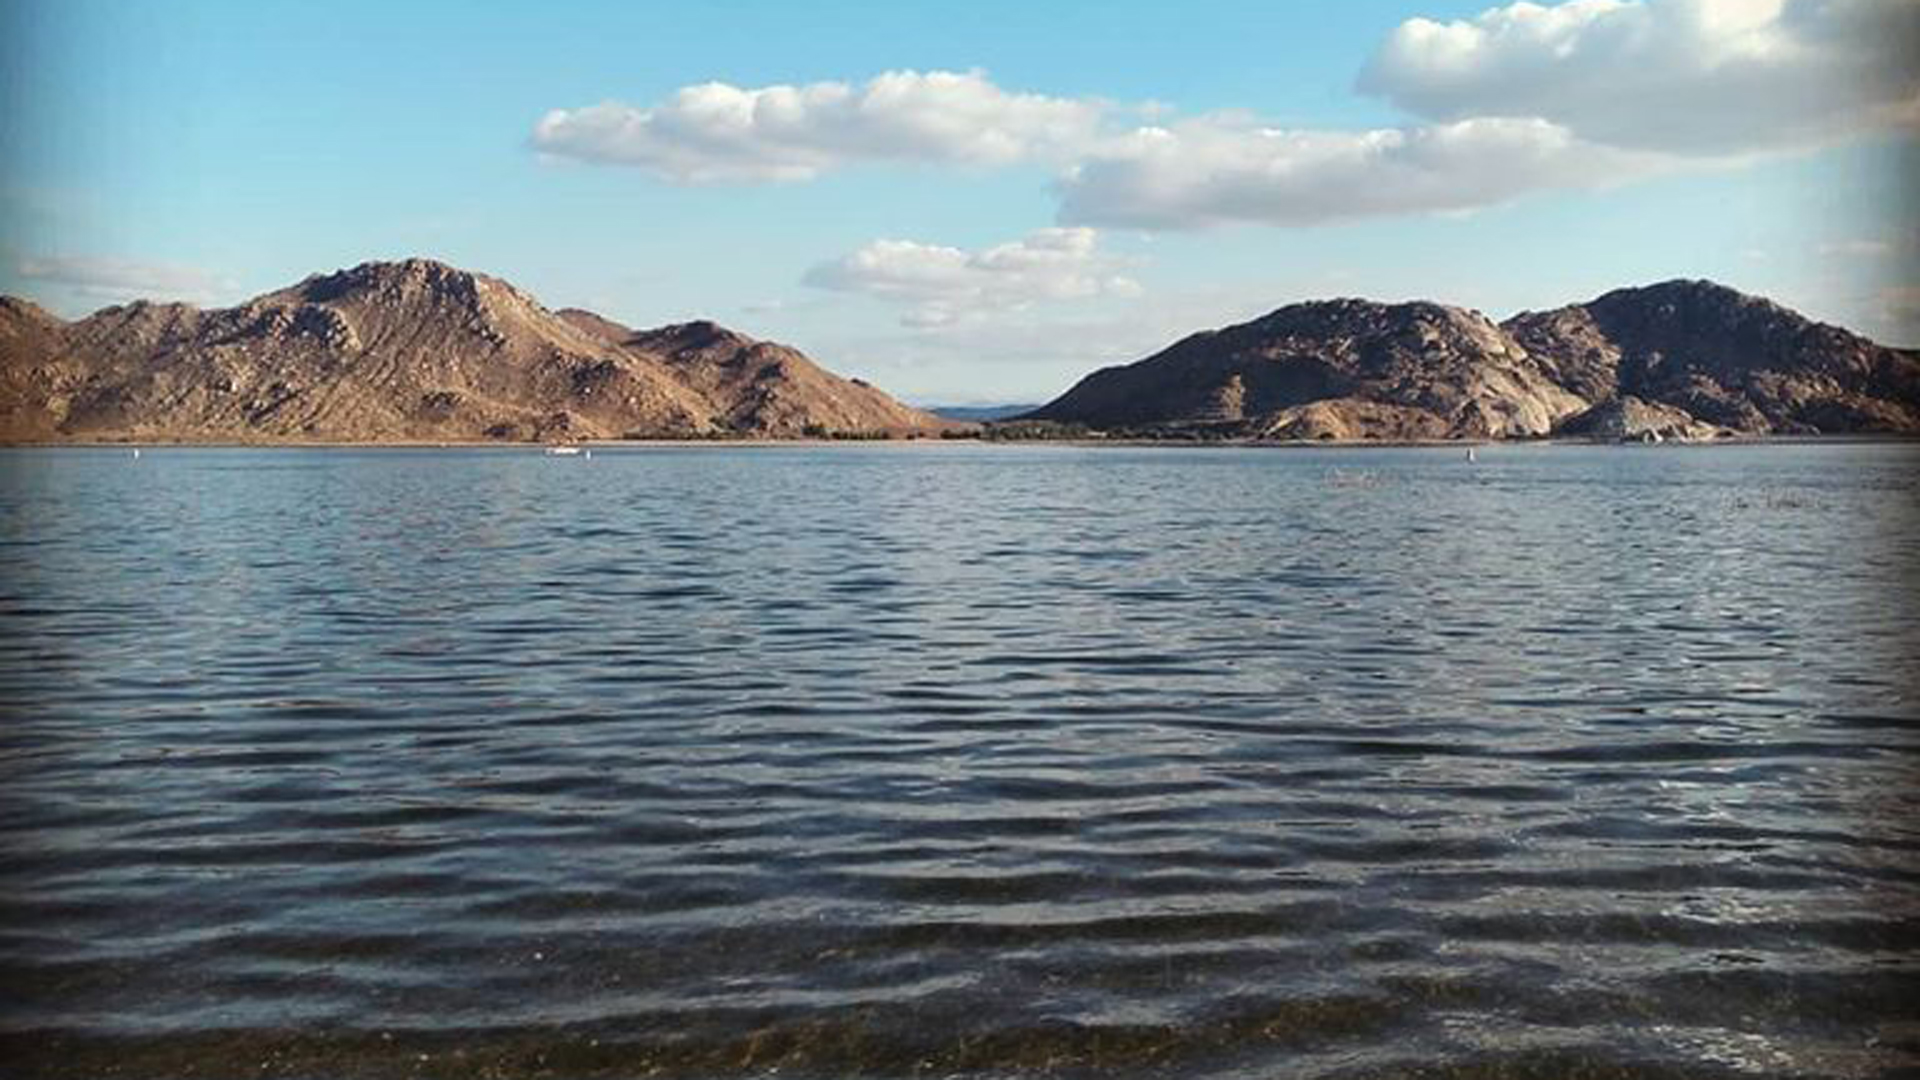 Lake Perris is seen in an image released by the Lake Perris State Recreation Area on Nov. 22, 2019.